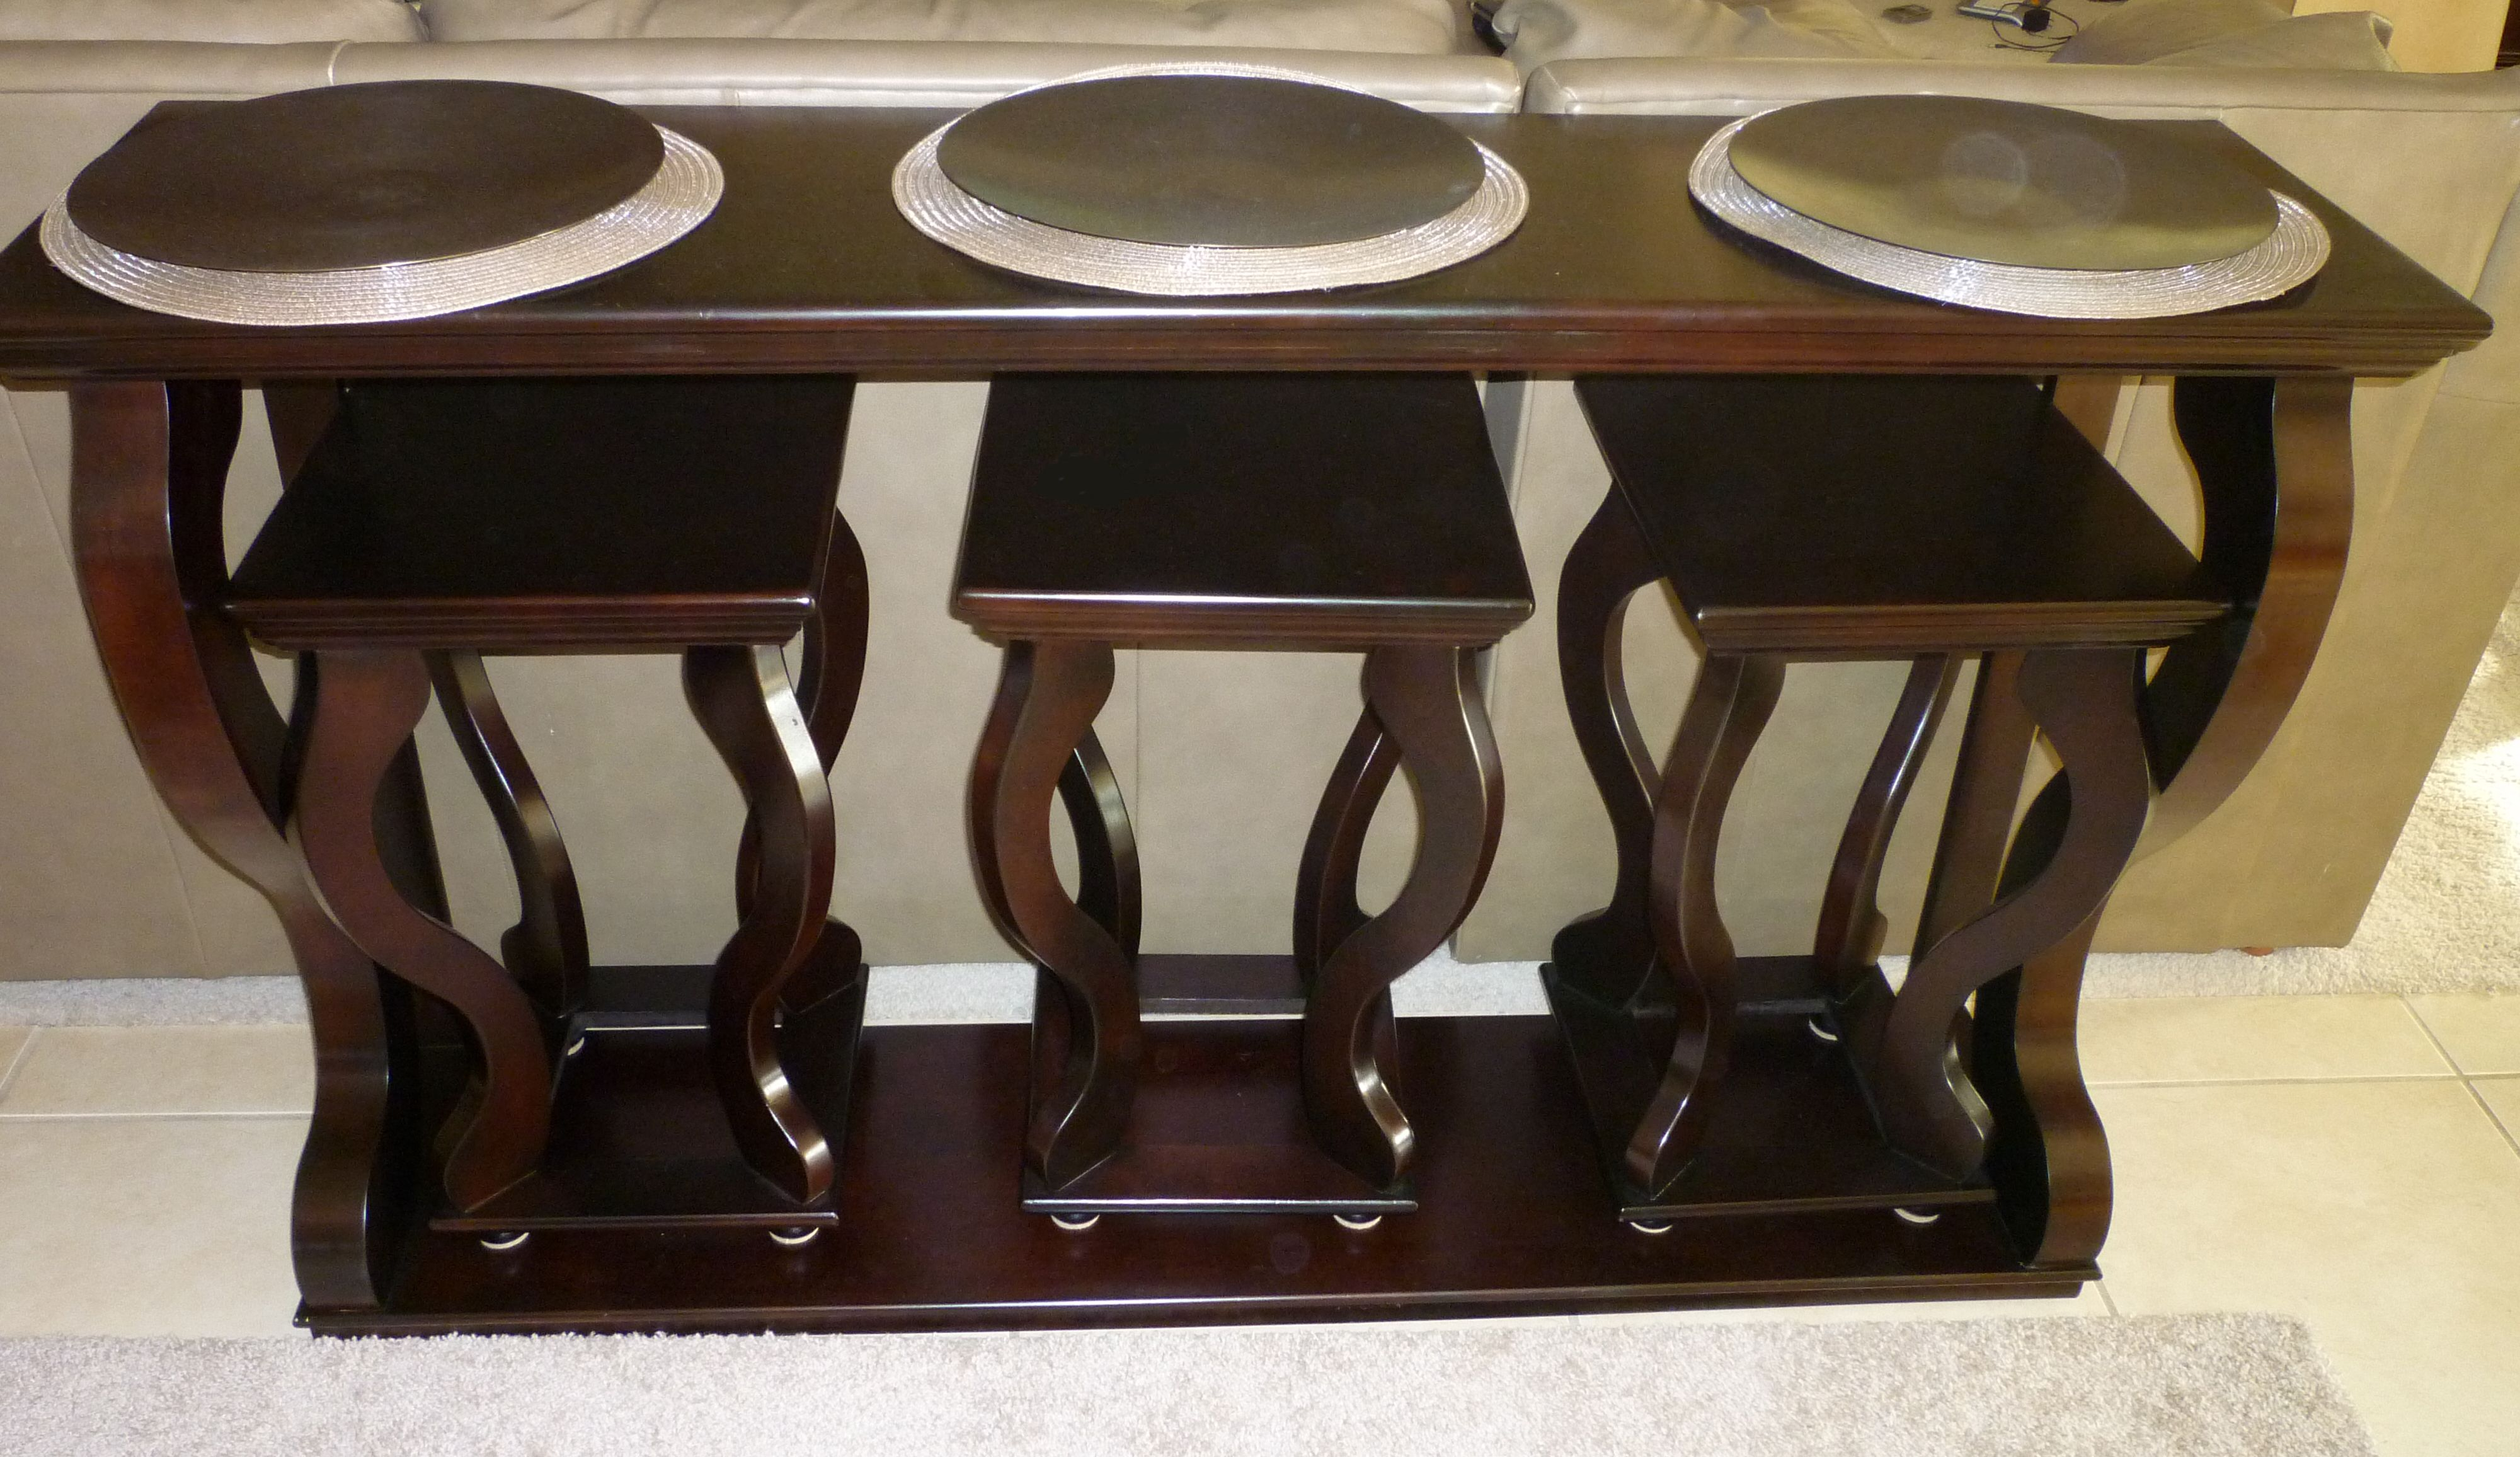 Thrifty Thinking Multipurpose Table Table Behind Couch Sofa Table